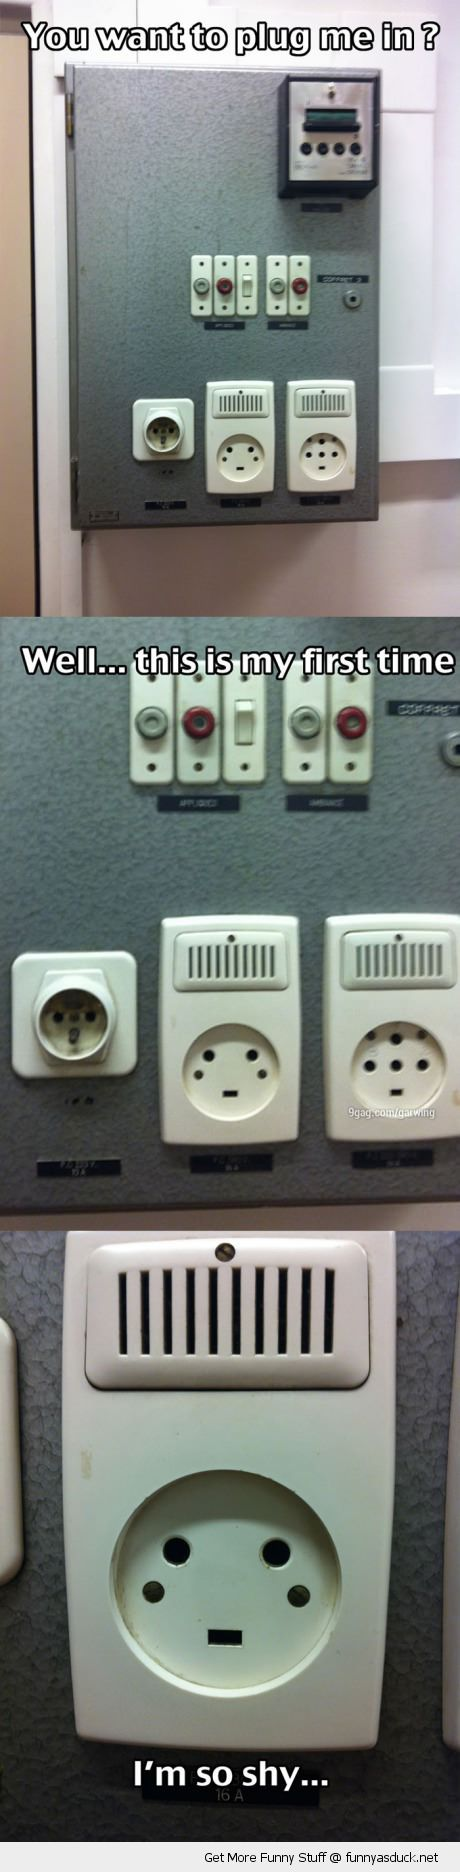 power socket plug in first time i'm shy face funny pics pictures pic picture image photo images photos lol